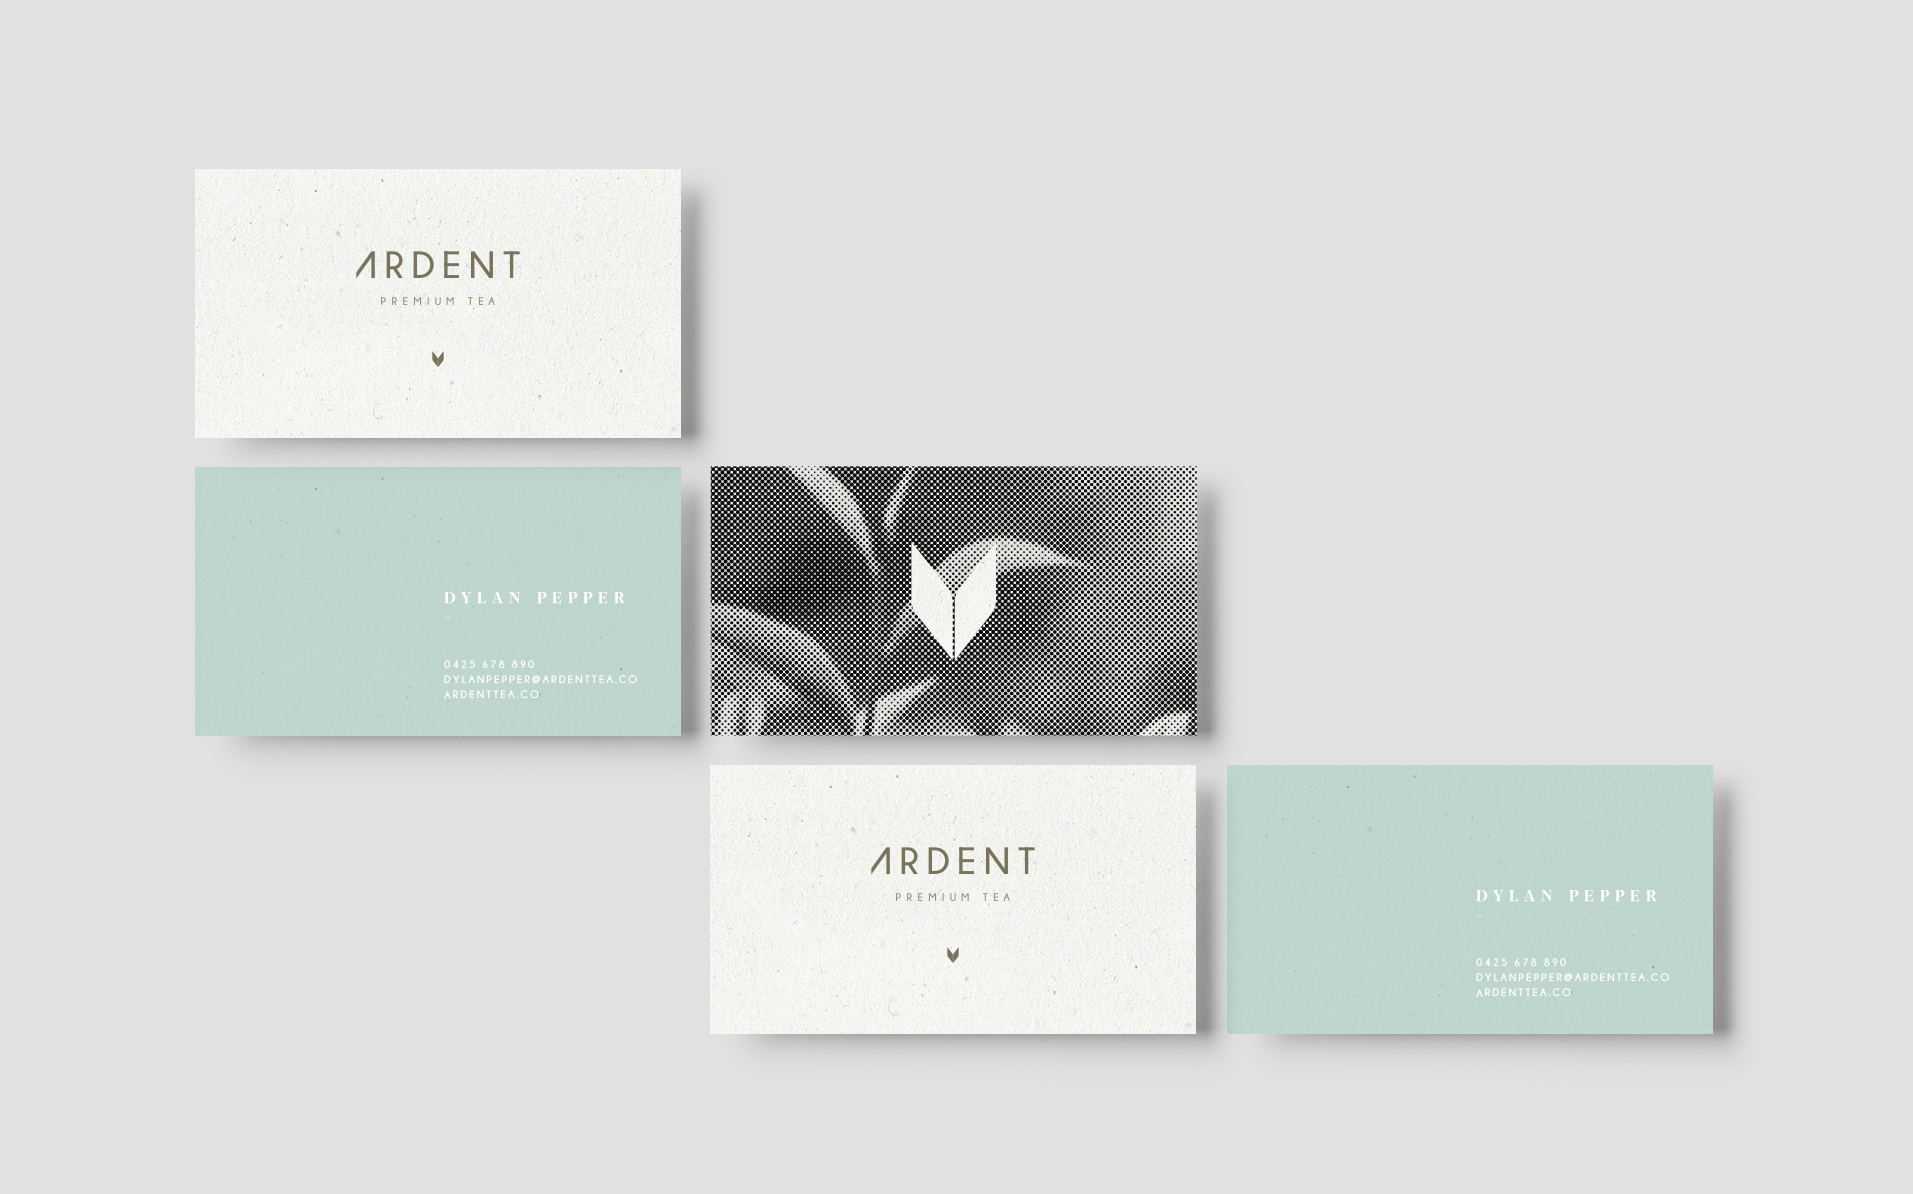 ARDENT Premium Tea Packaging